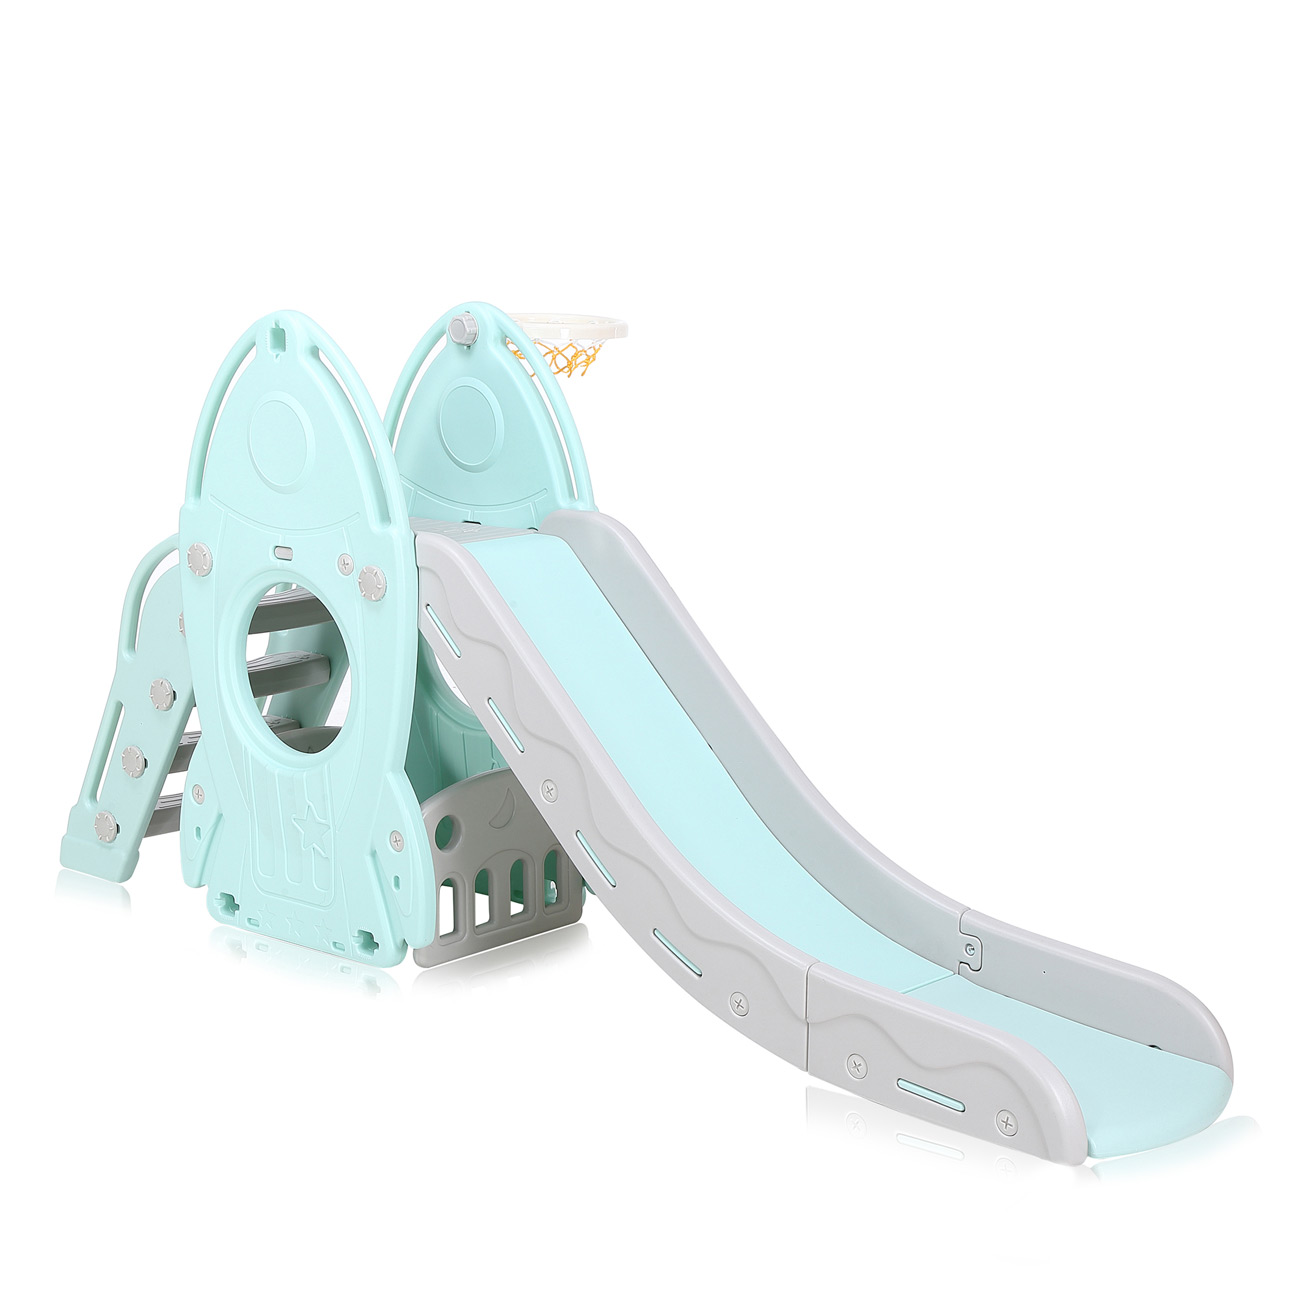 baby vivo toboggan pour enfants toboggan en turquoise gris b b enfant jouets terrains de jeux. Black Bedroom Furniture Sets. Home Design Ideas